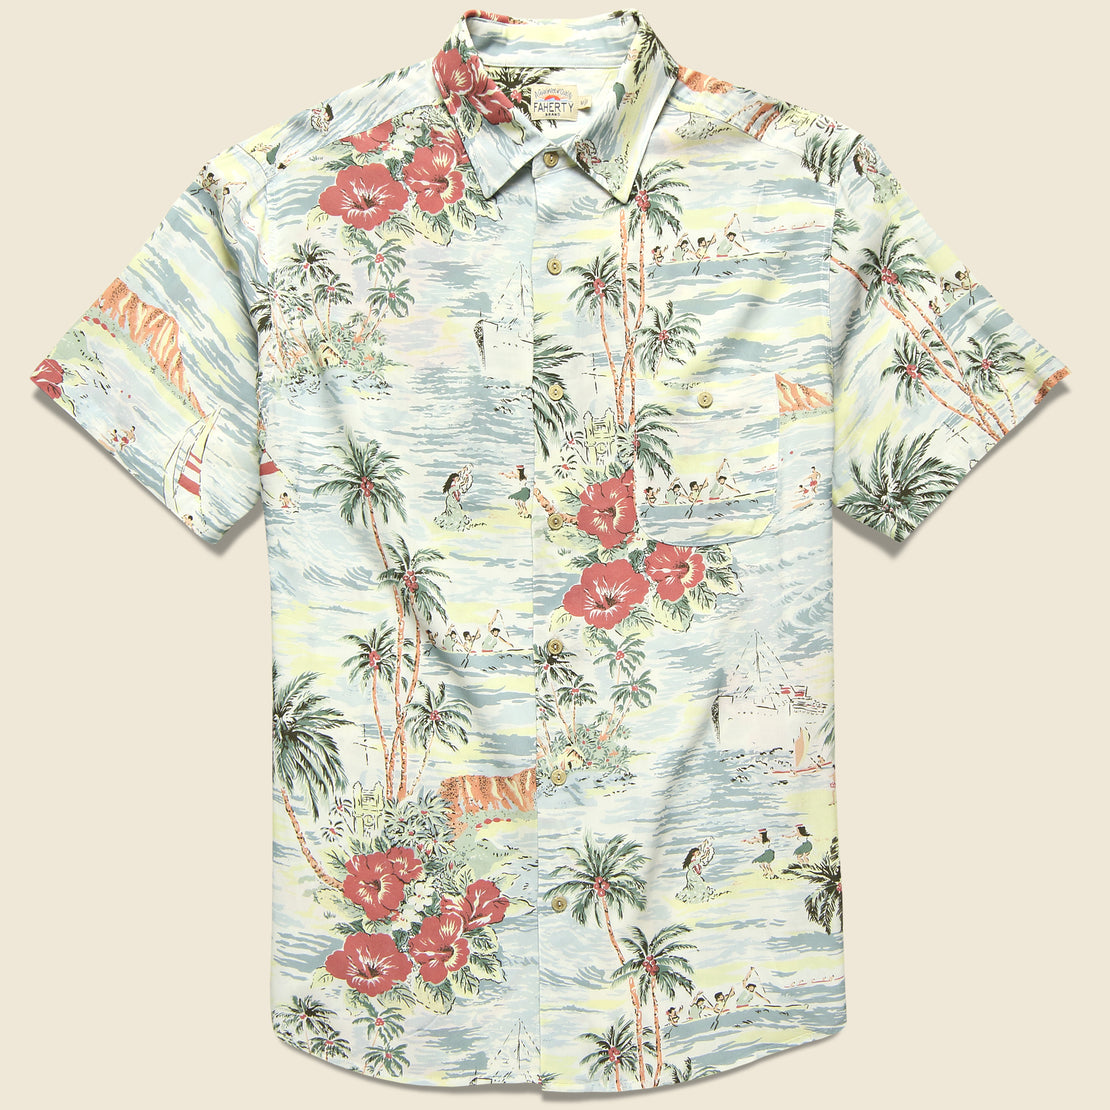 874eafb0 Faherty Rayon Hawaiian Shirt - Aloha Bliss ...